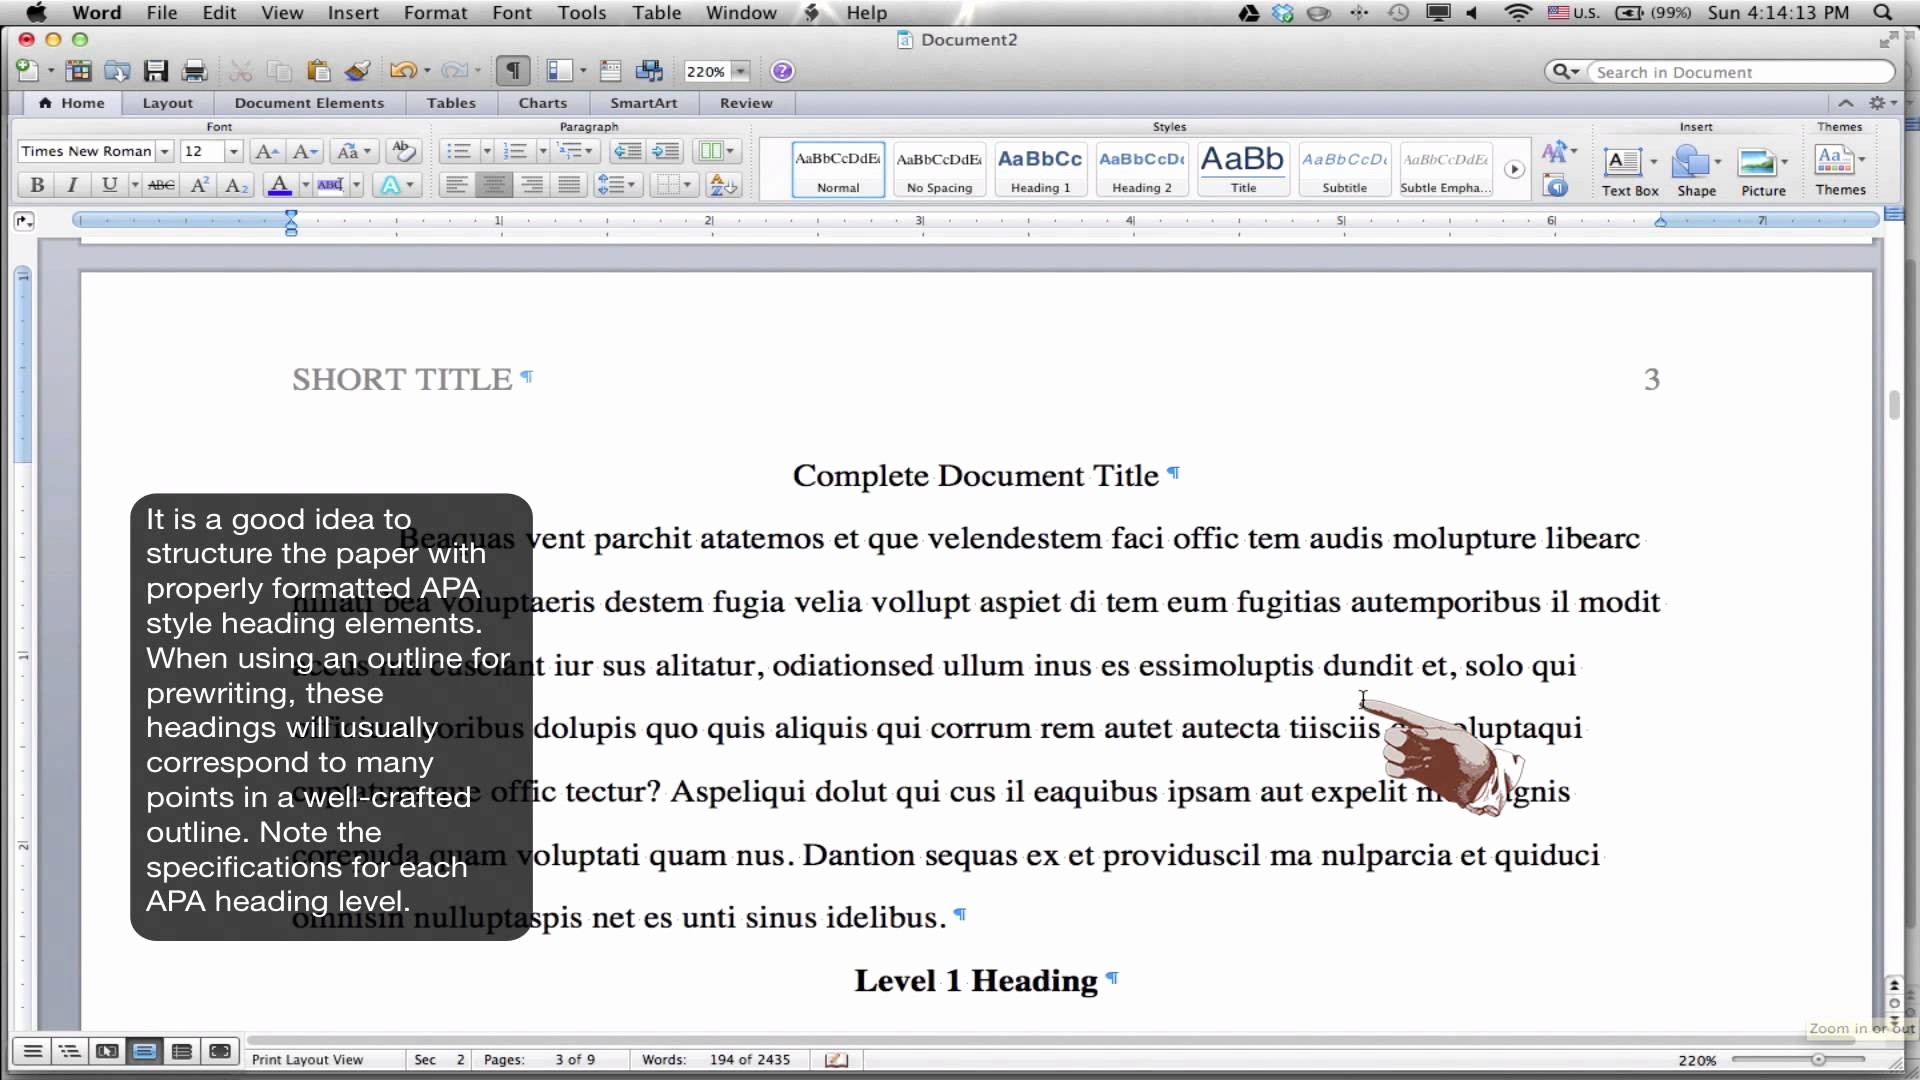 Apa Style Microsoft Word 2013 Awesome Apa format Template Word 2013